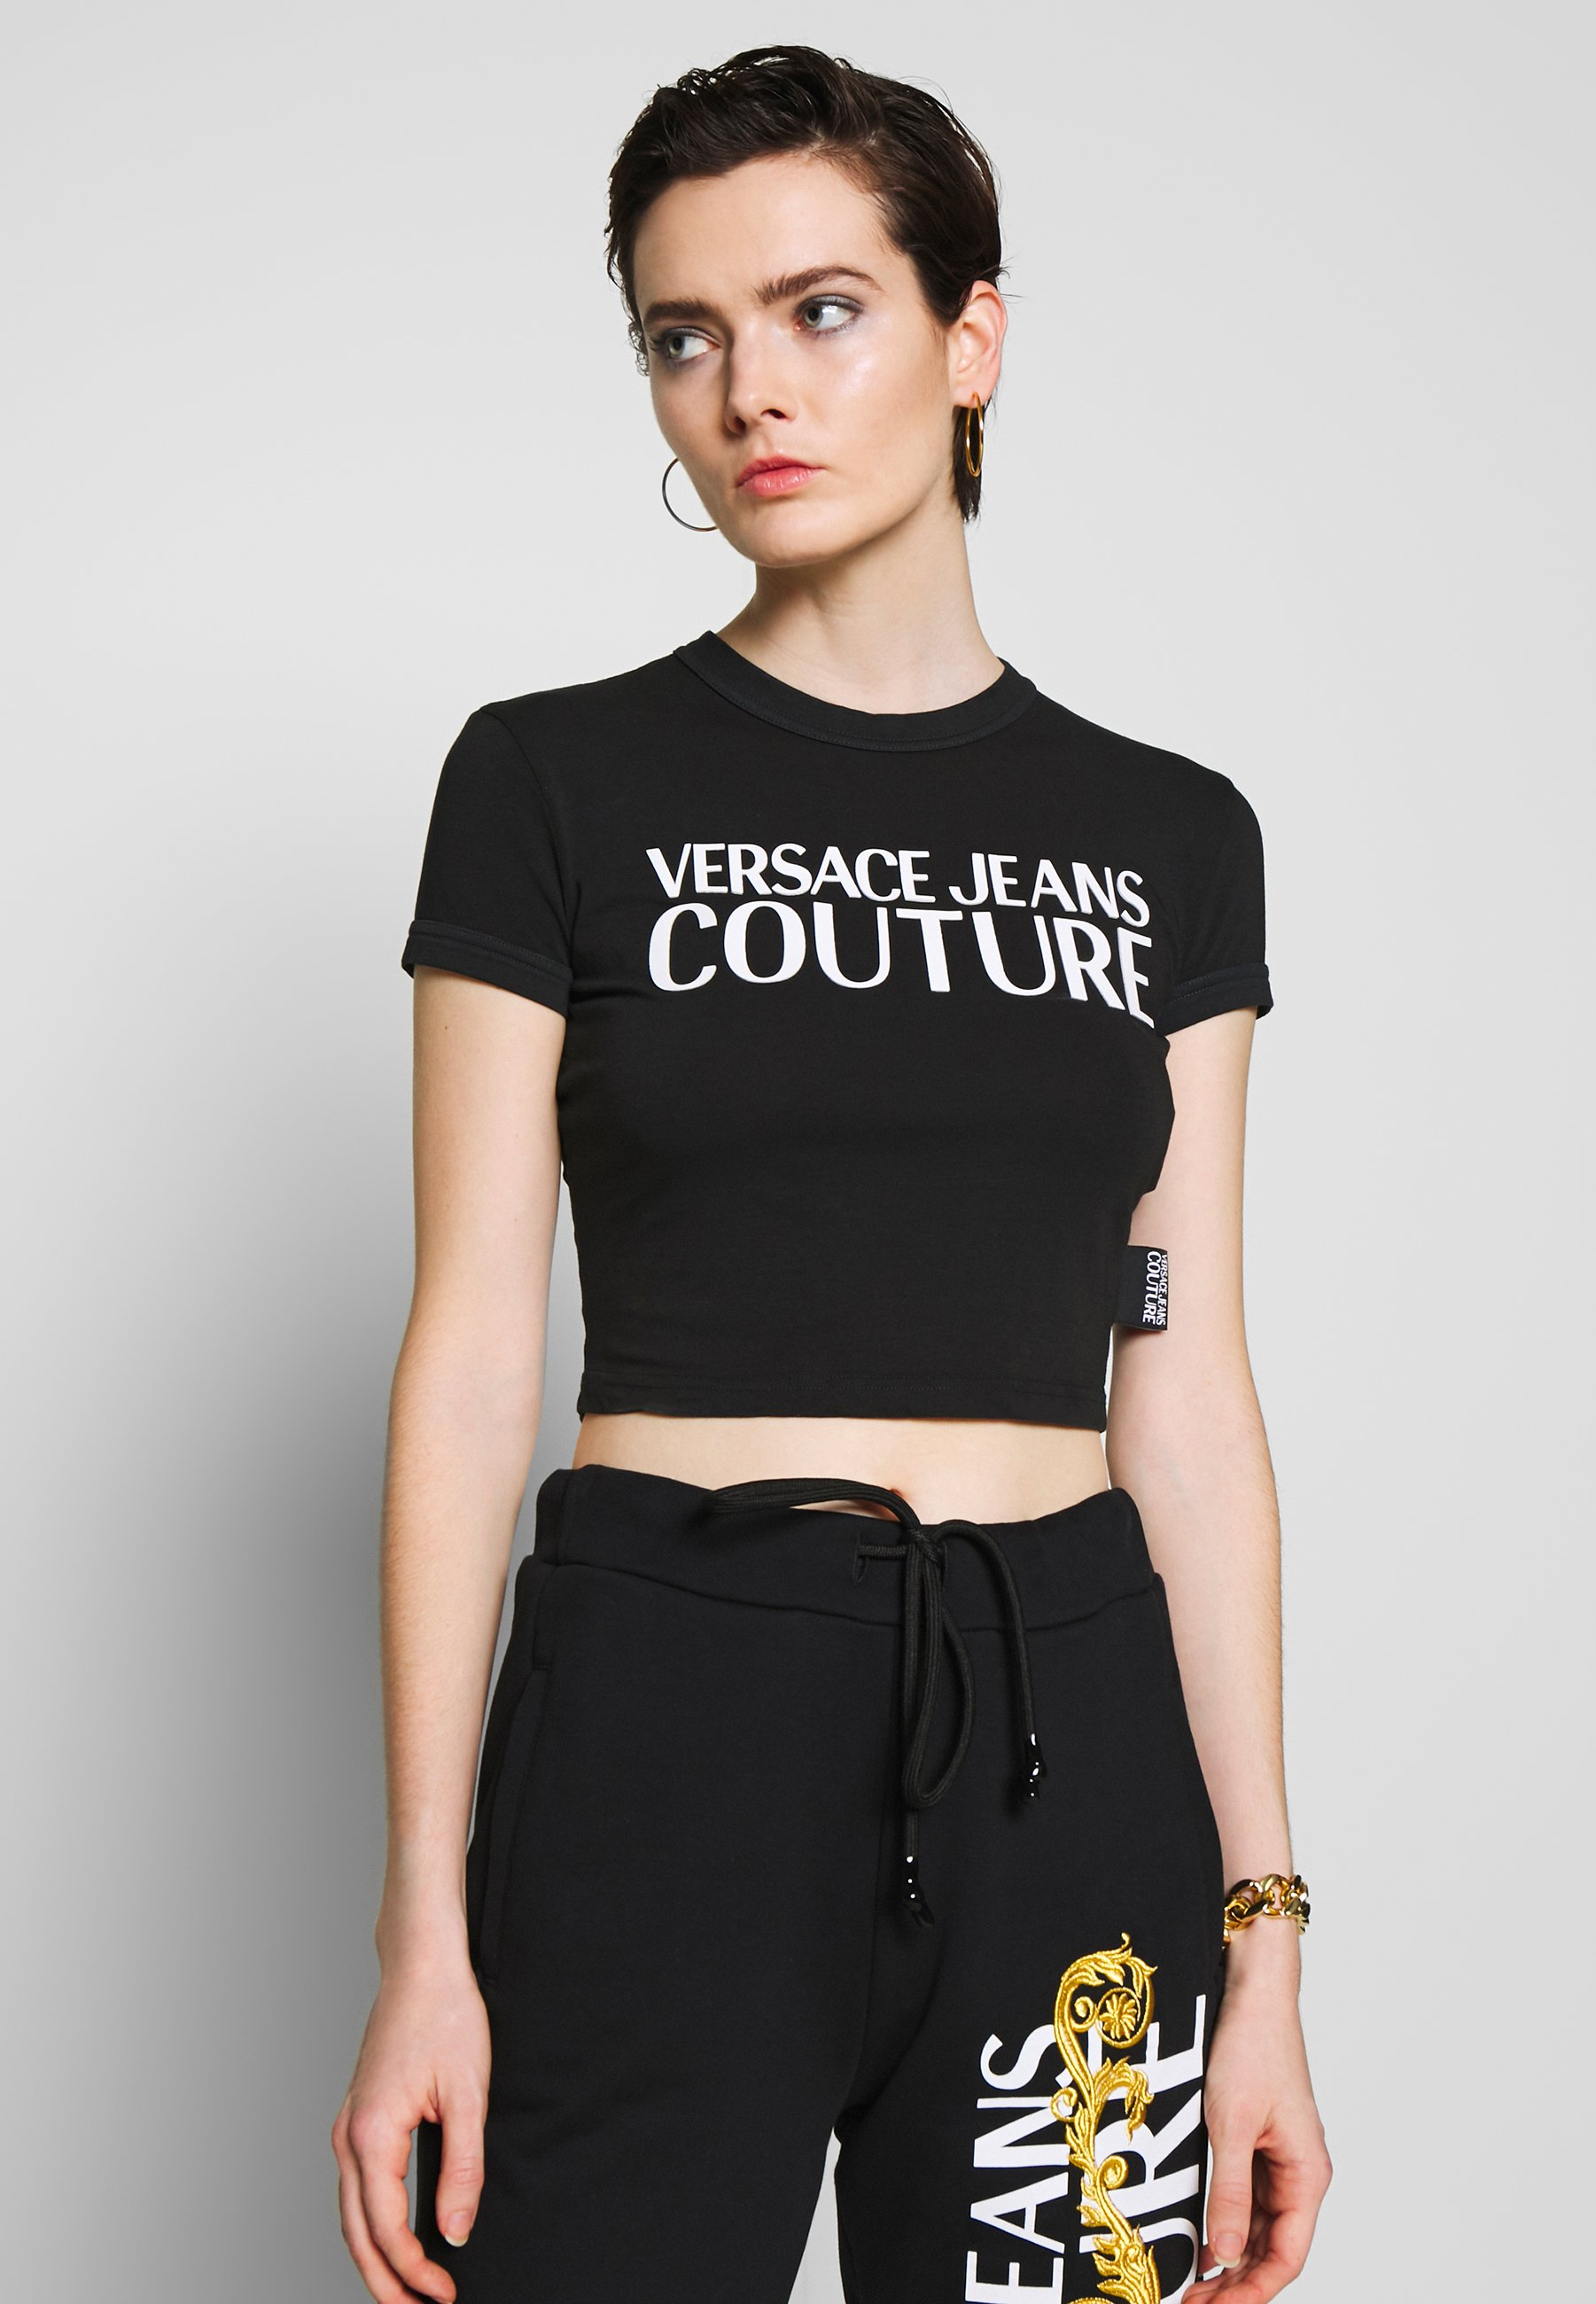 Versace Jeans Couture T-shirt con stampa - black